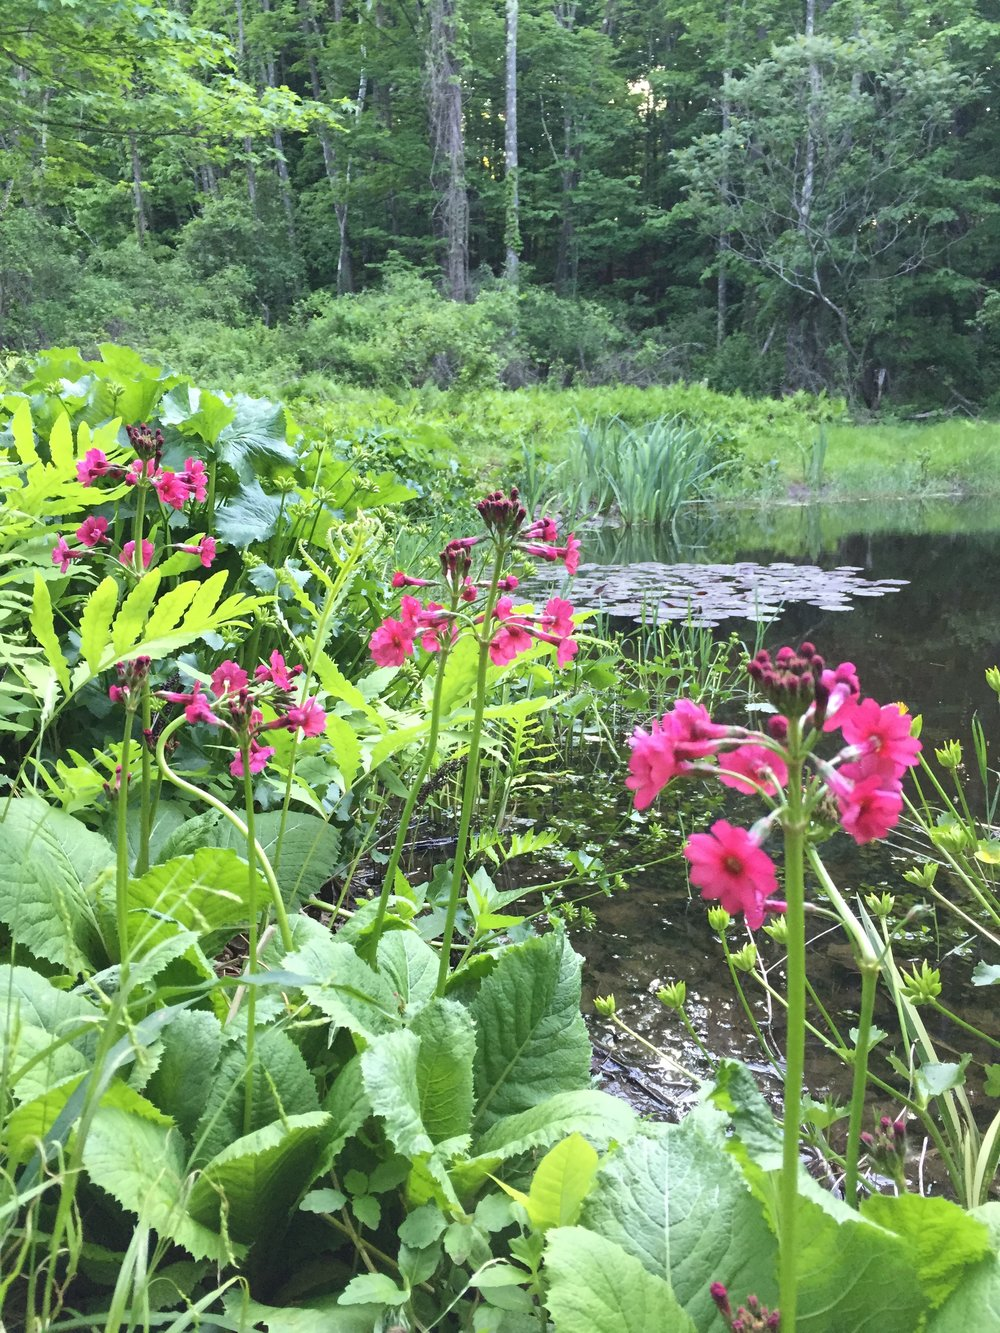 PRIMula JAPONICA HAVE BEEN NATURALIZED AROUND THIS HAND DUG POND IN THE CATSKILL FOOTHILLS